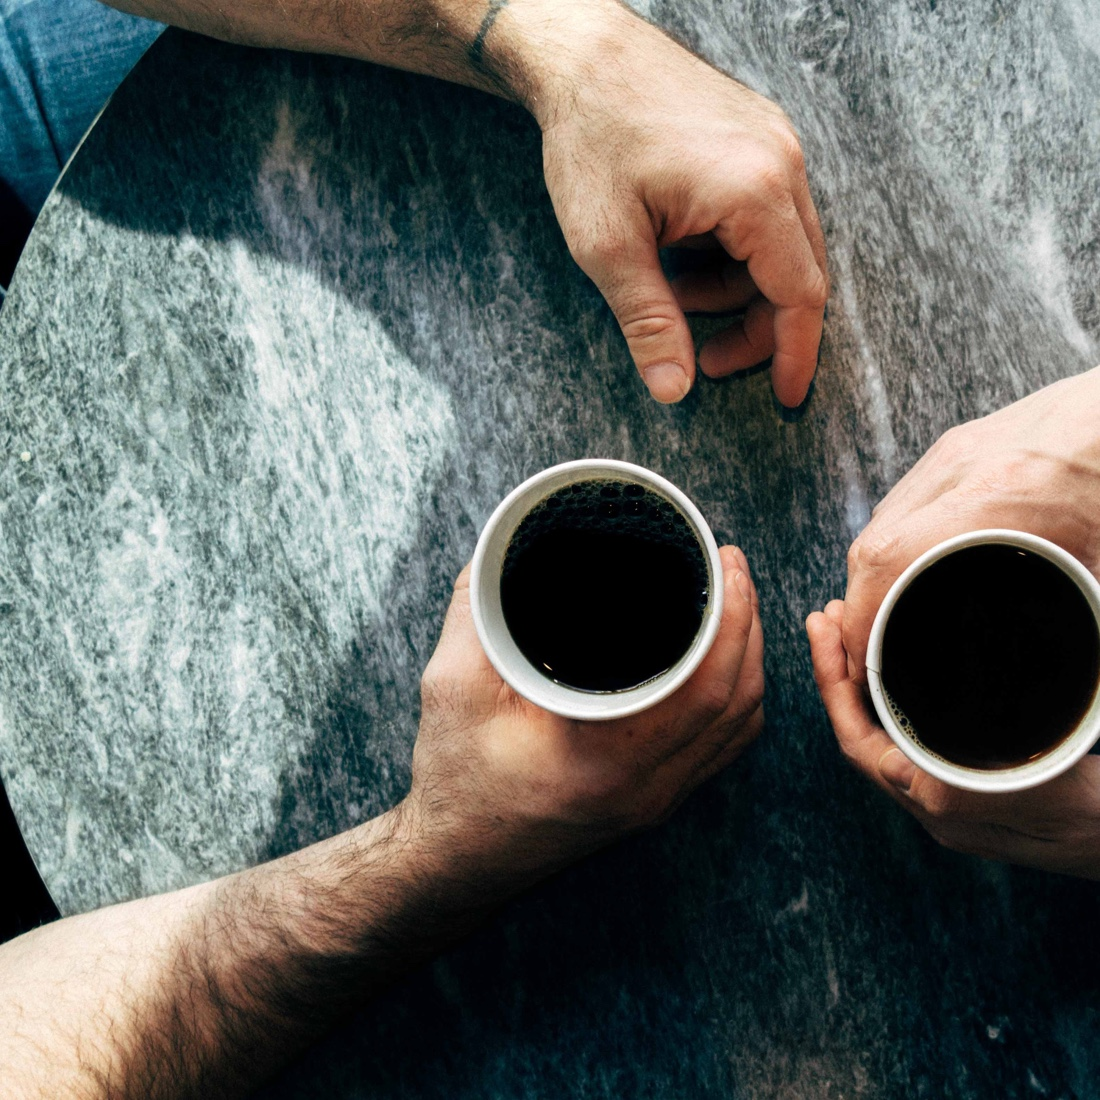 Birdseye view of two pairs of hands, each holding coffee cups, resting on a table.